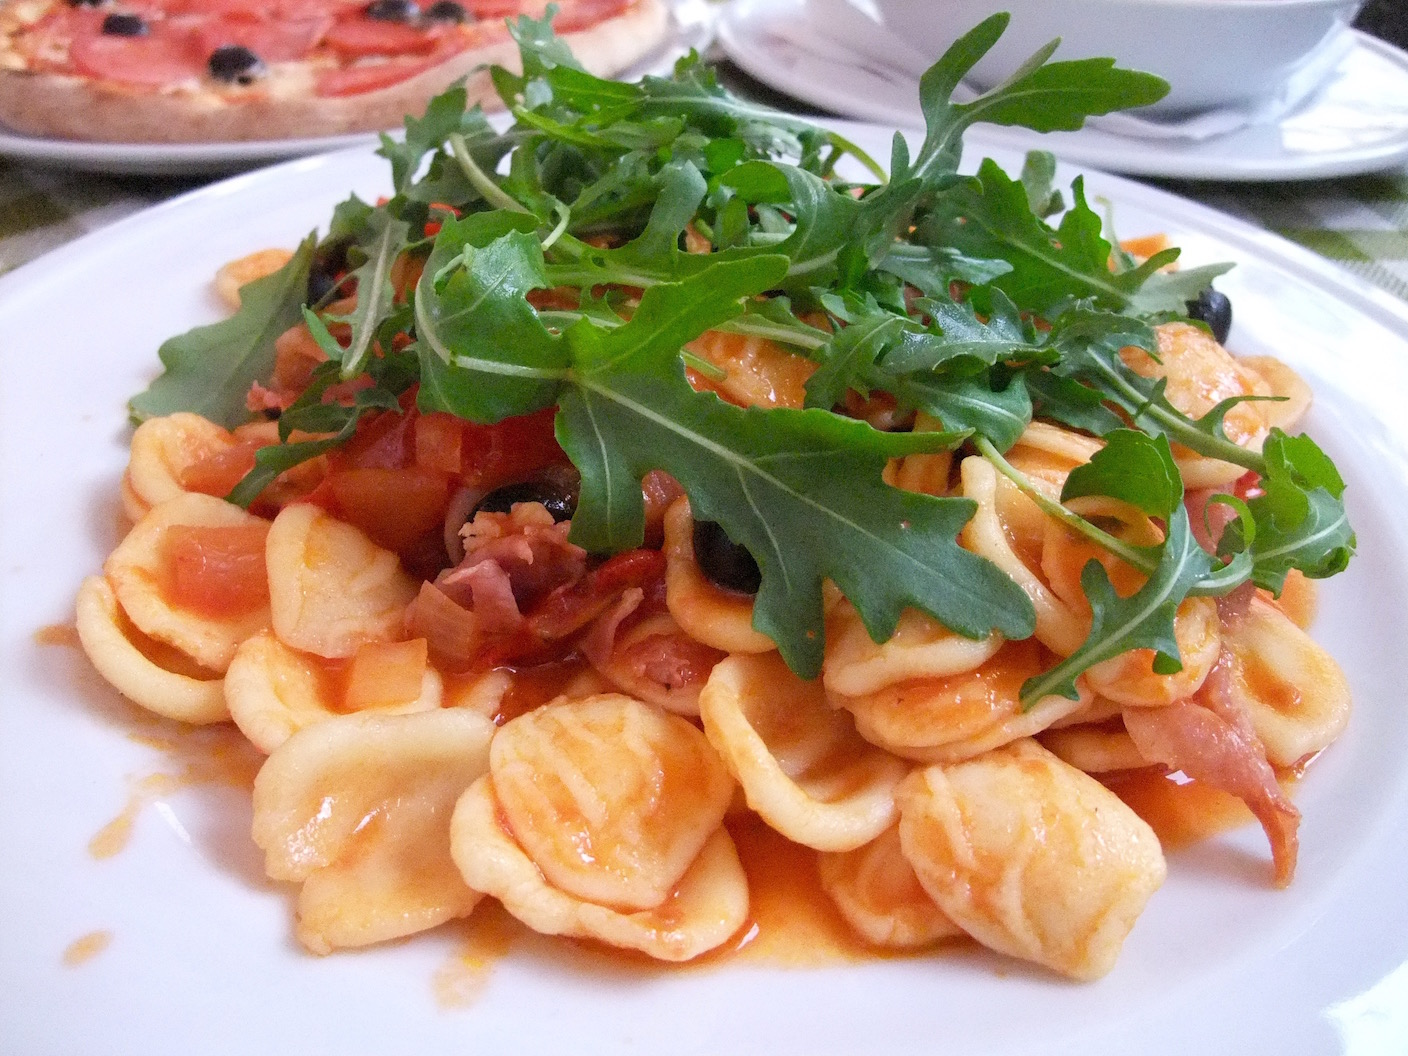 My  Orecchiette  with ham, garlic, onions, olives, tomatoes, parmesan, and arugula